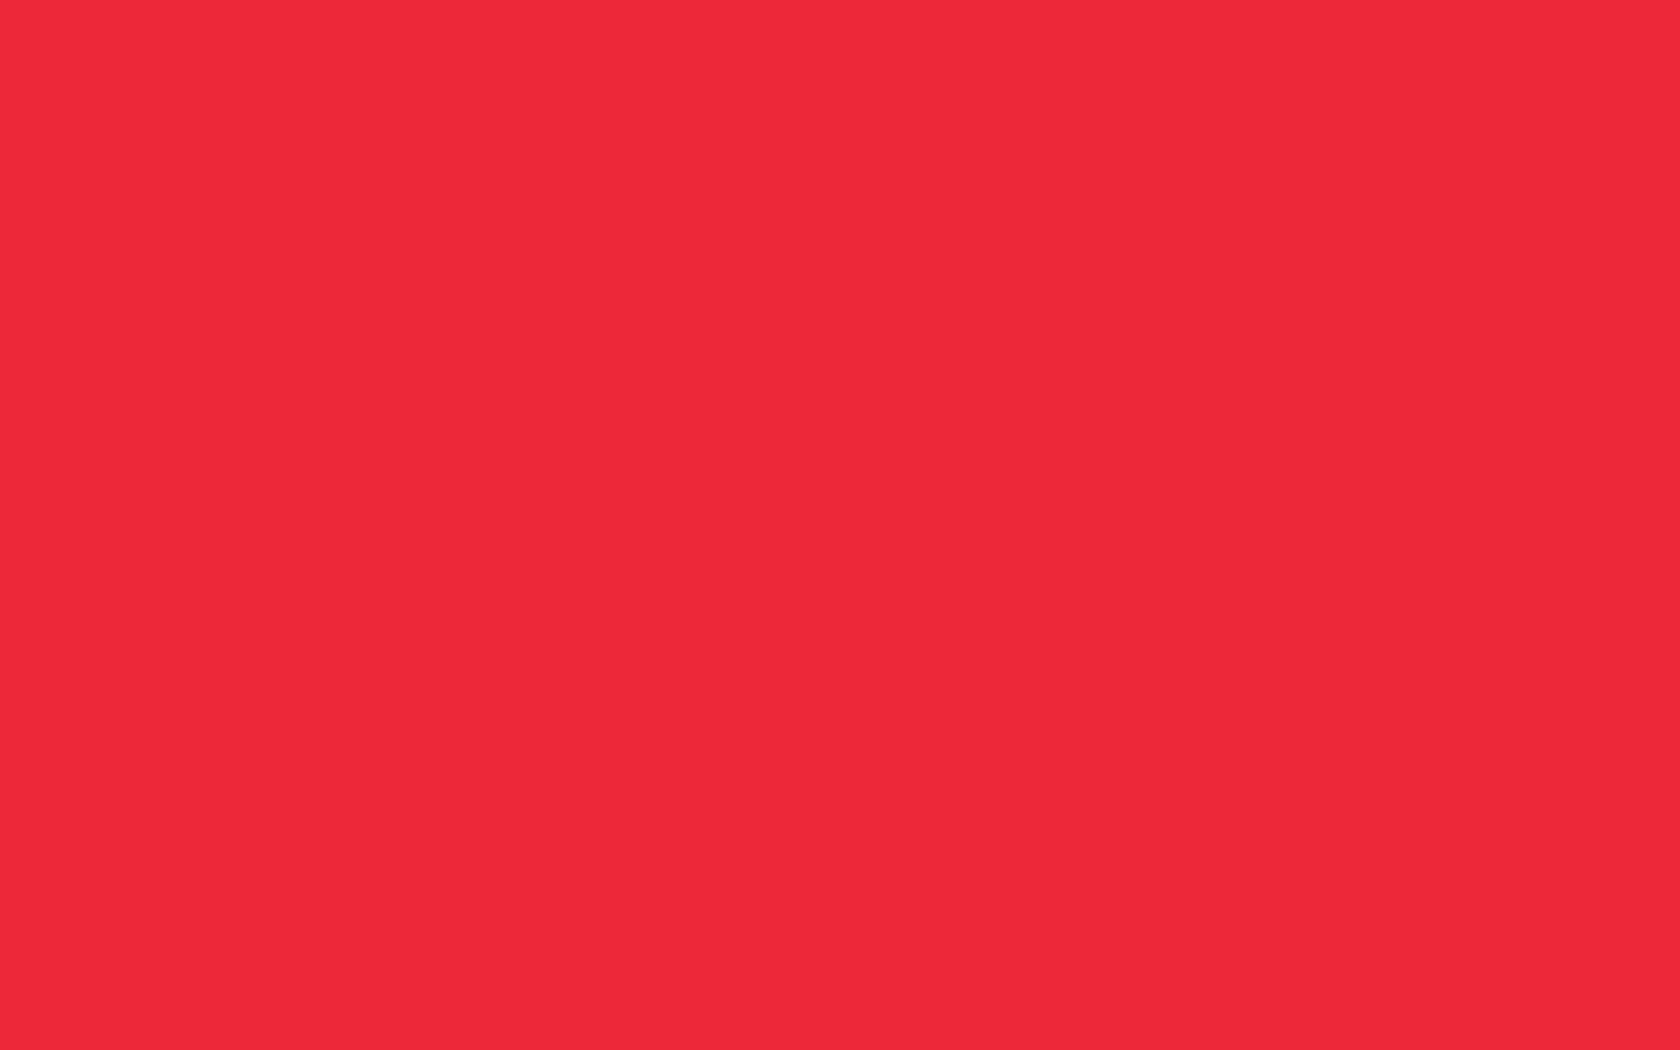 1680x1050 Red Pantone Solid Color Background